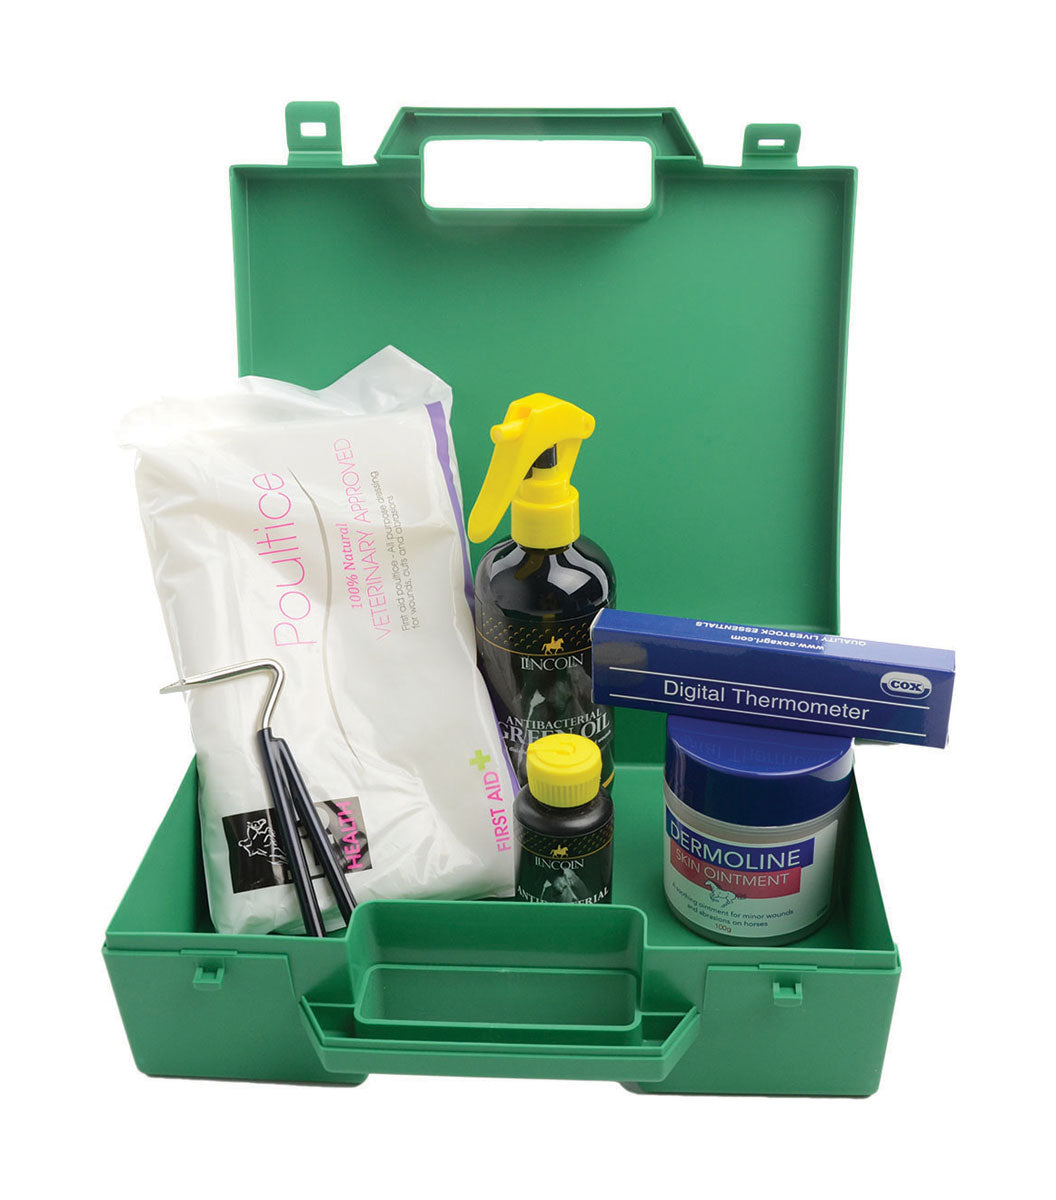 Lincoln First Aid Kit